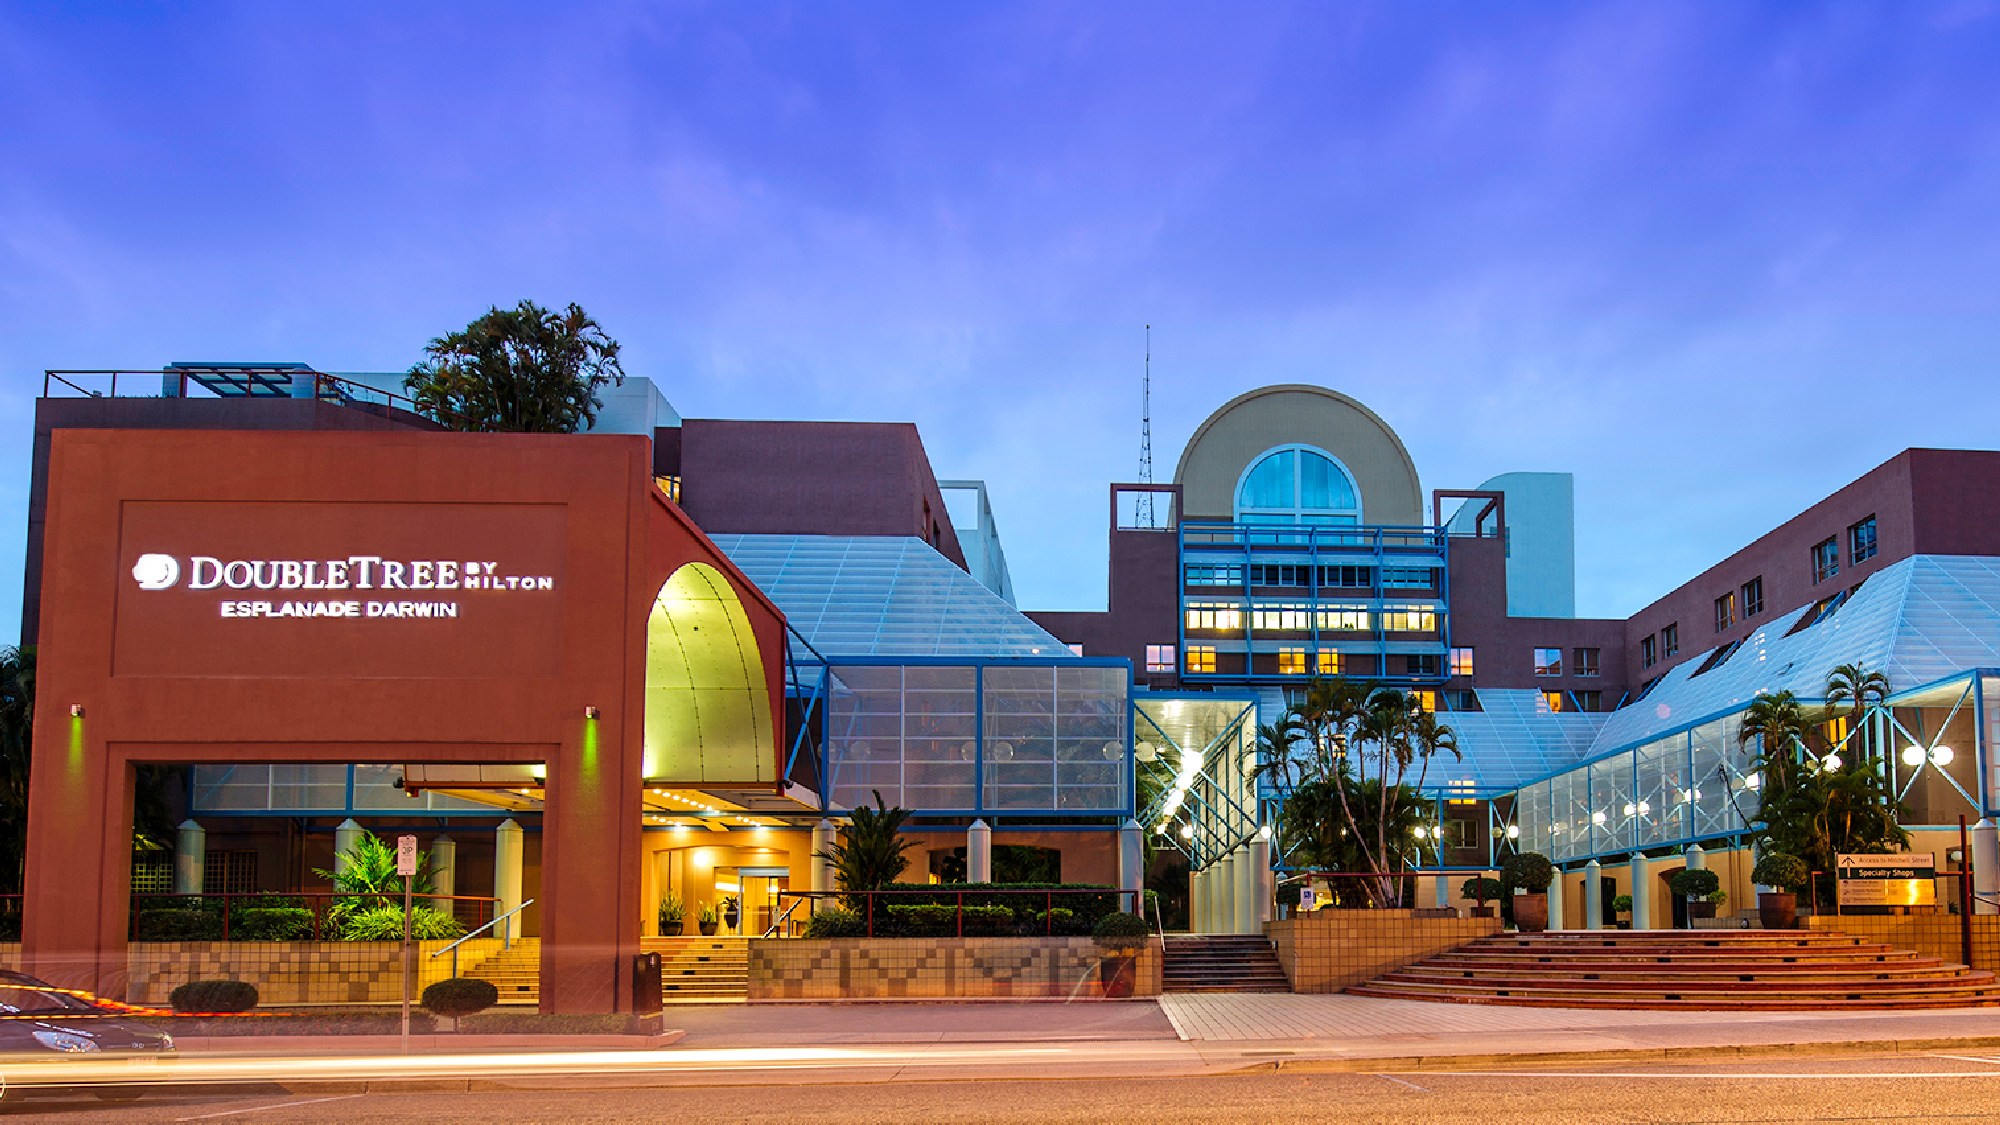 Darwin Short Stay with DoubleTree by Hilton Hotel Esplanade - 3,5,7 nights for 2 people